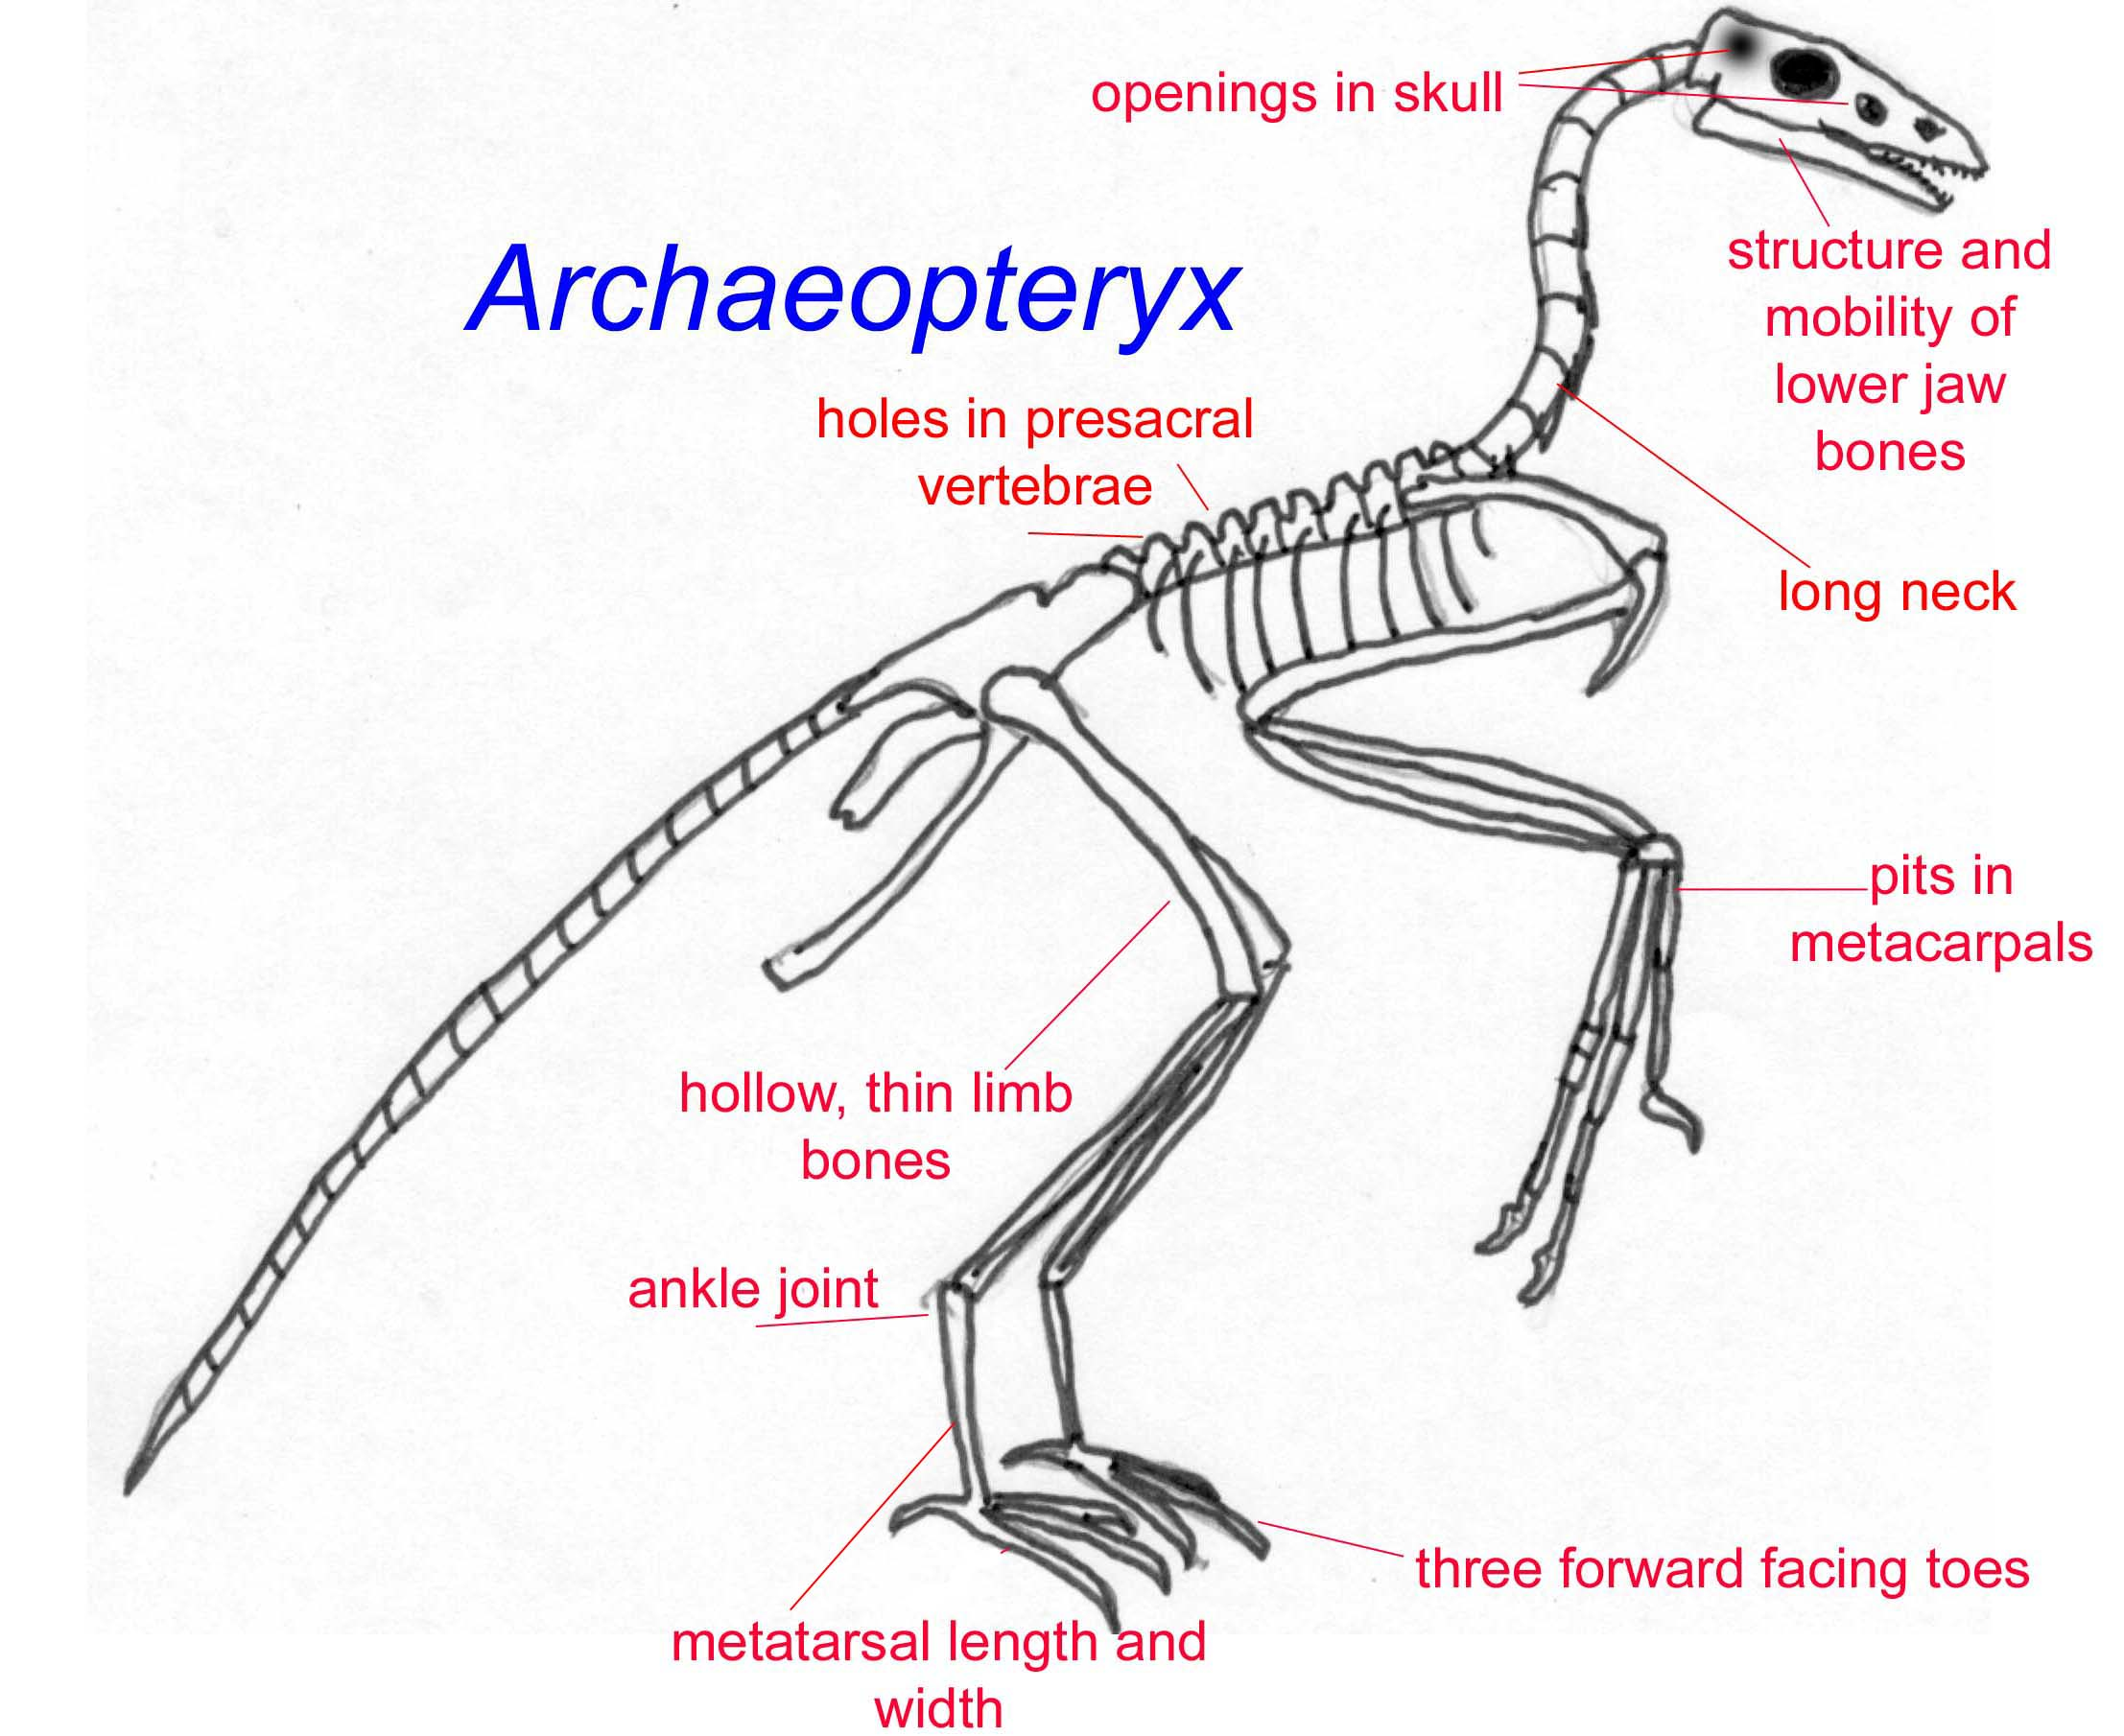 the characteristics and anatomy of deinonychus a type of dinosaur Ankylosaurus dinosaur the most famous armored dinosaurs known as the ankylosaurians which is weighed up to 45 metric tons and its legs were short like tyrannosaurus,deinonychus provides information on the physical characteristics, behavior, habits.